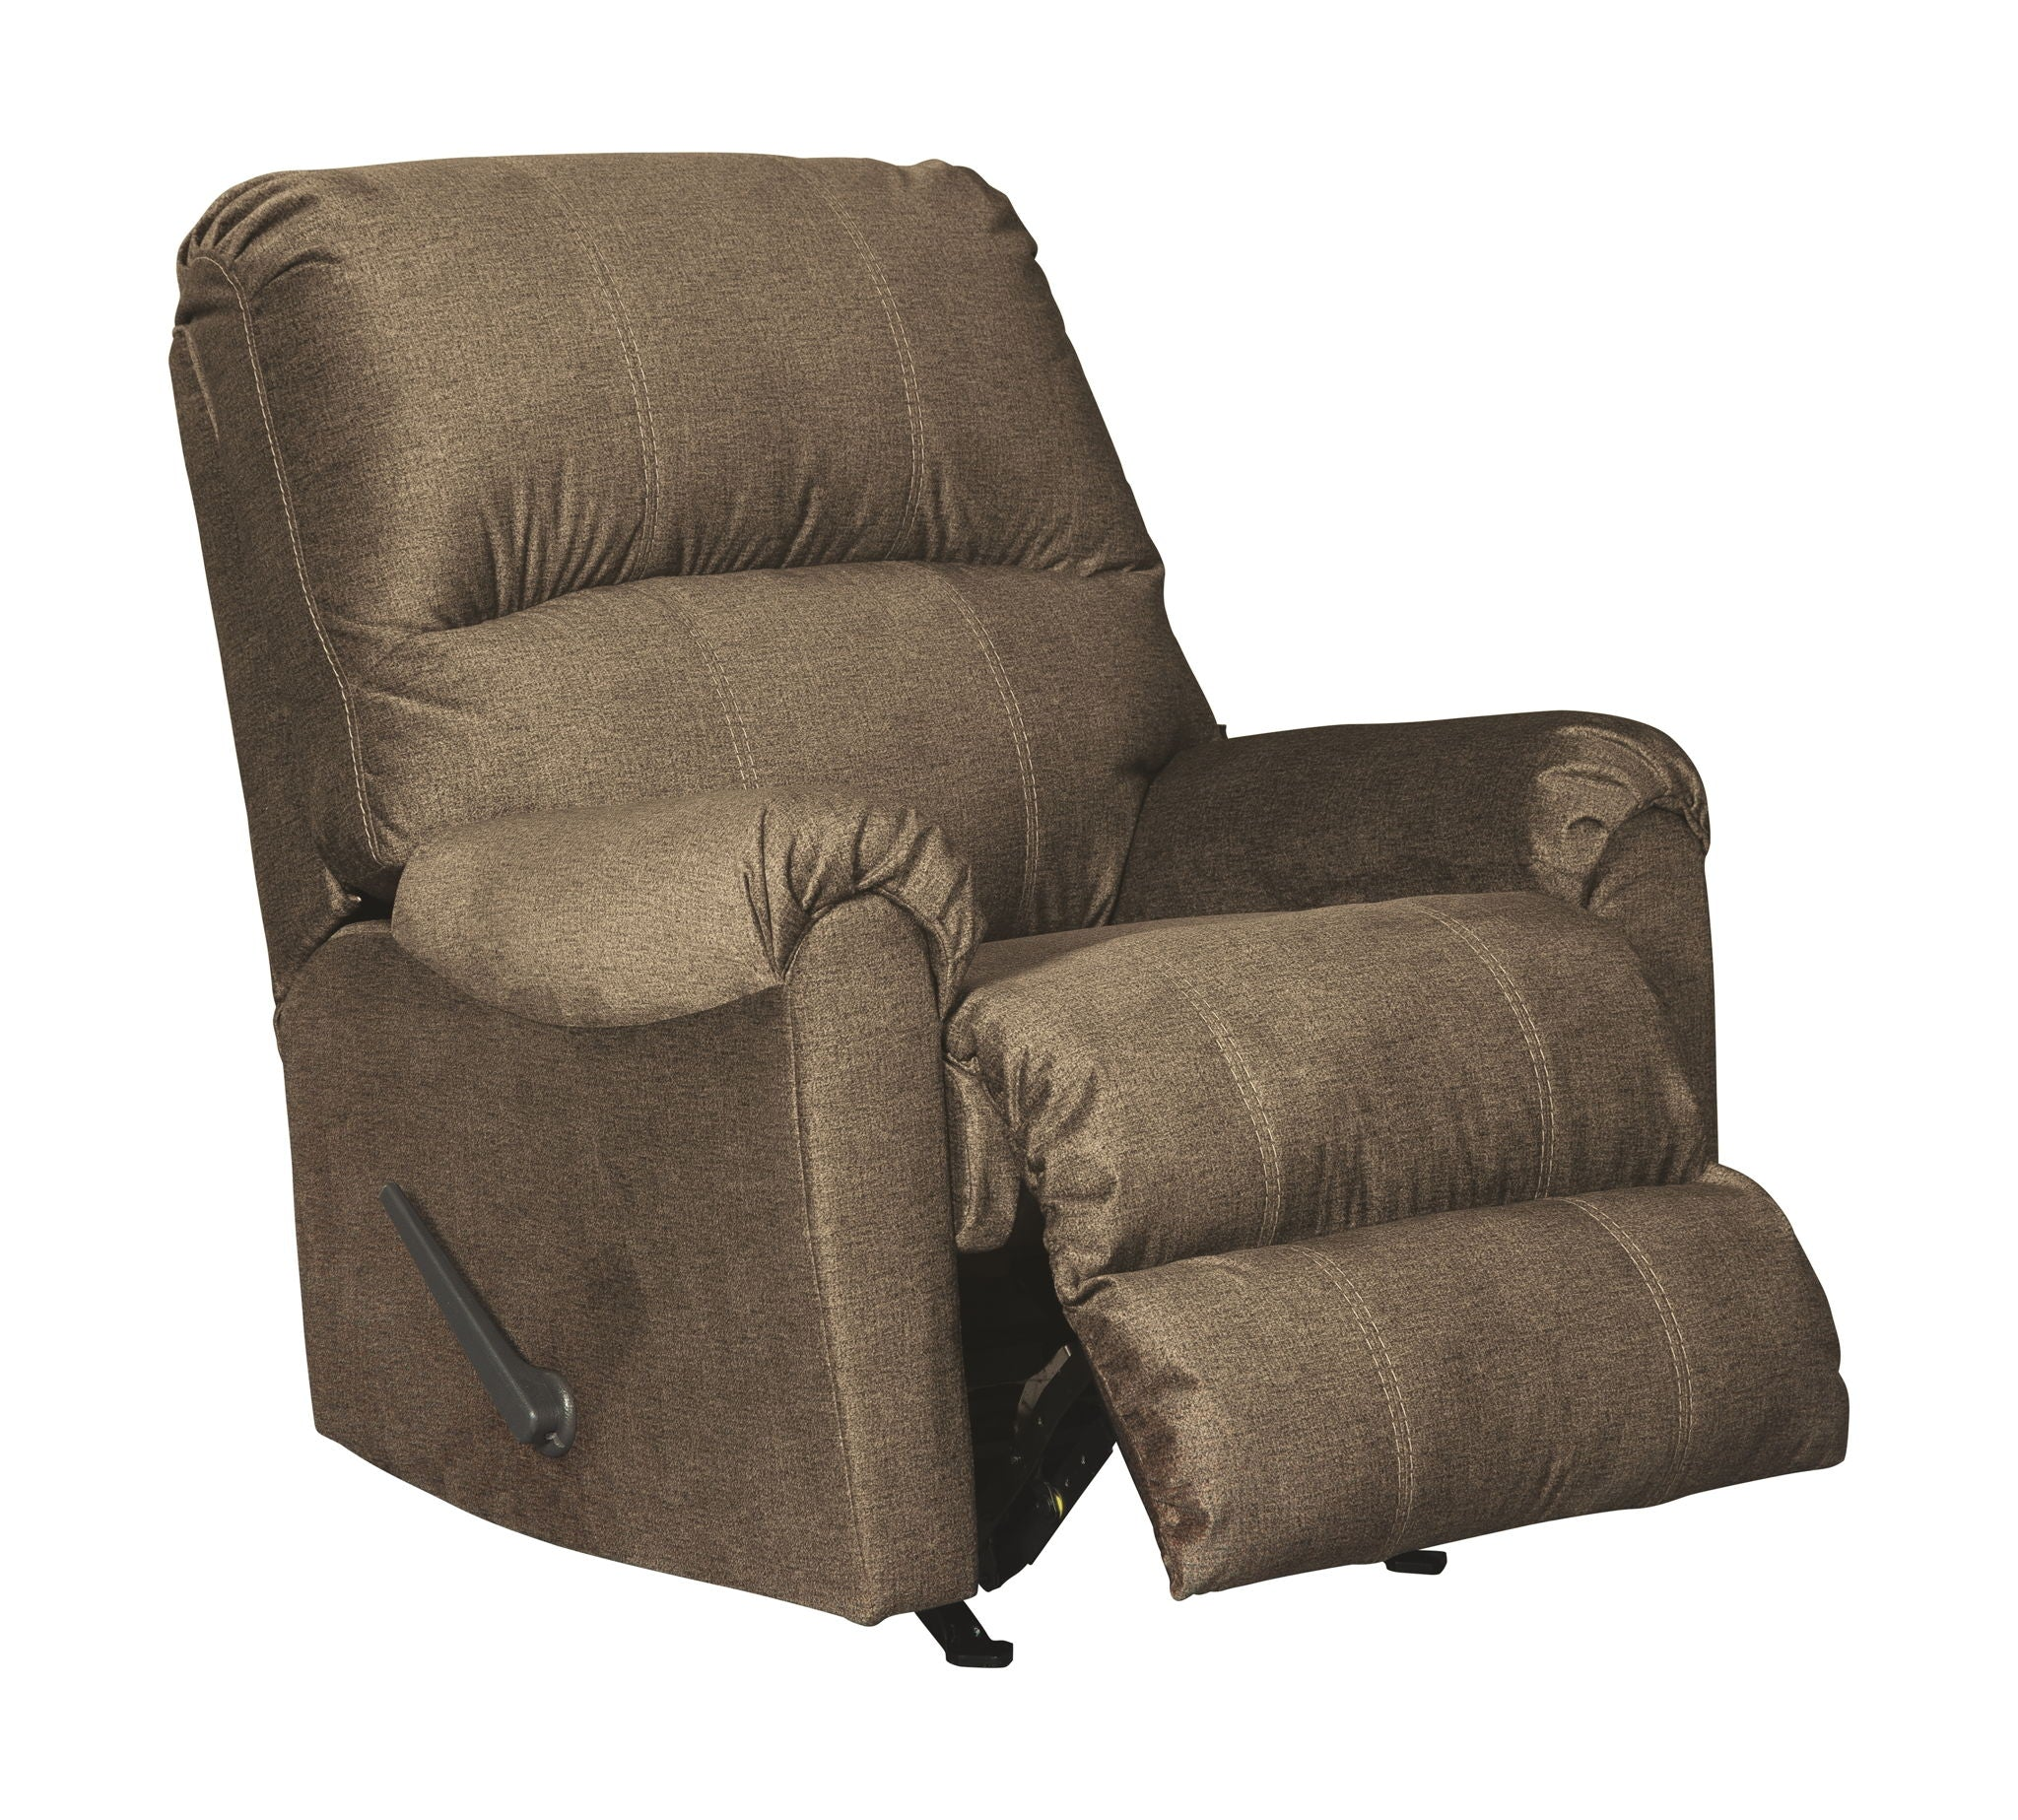 Urbino Recliner | Calgary's Furniture Store